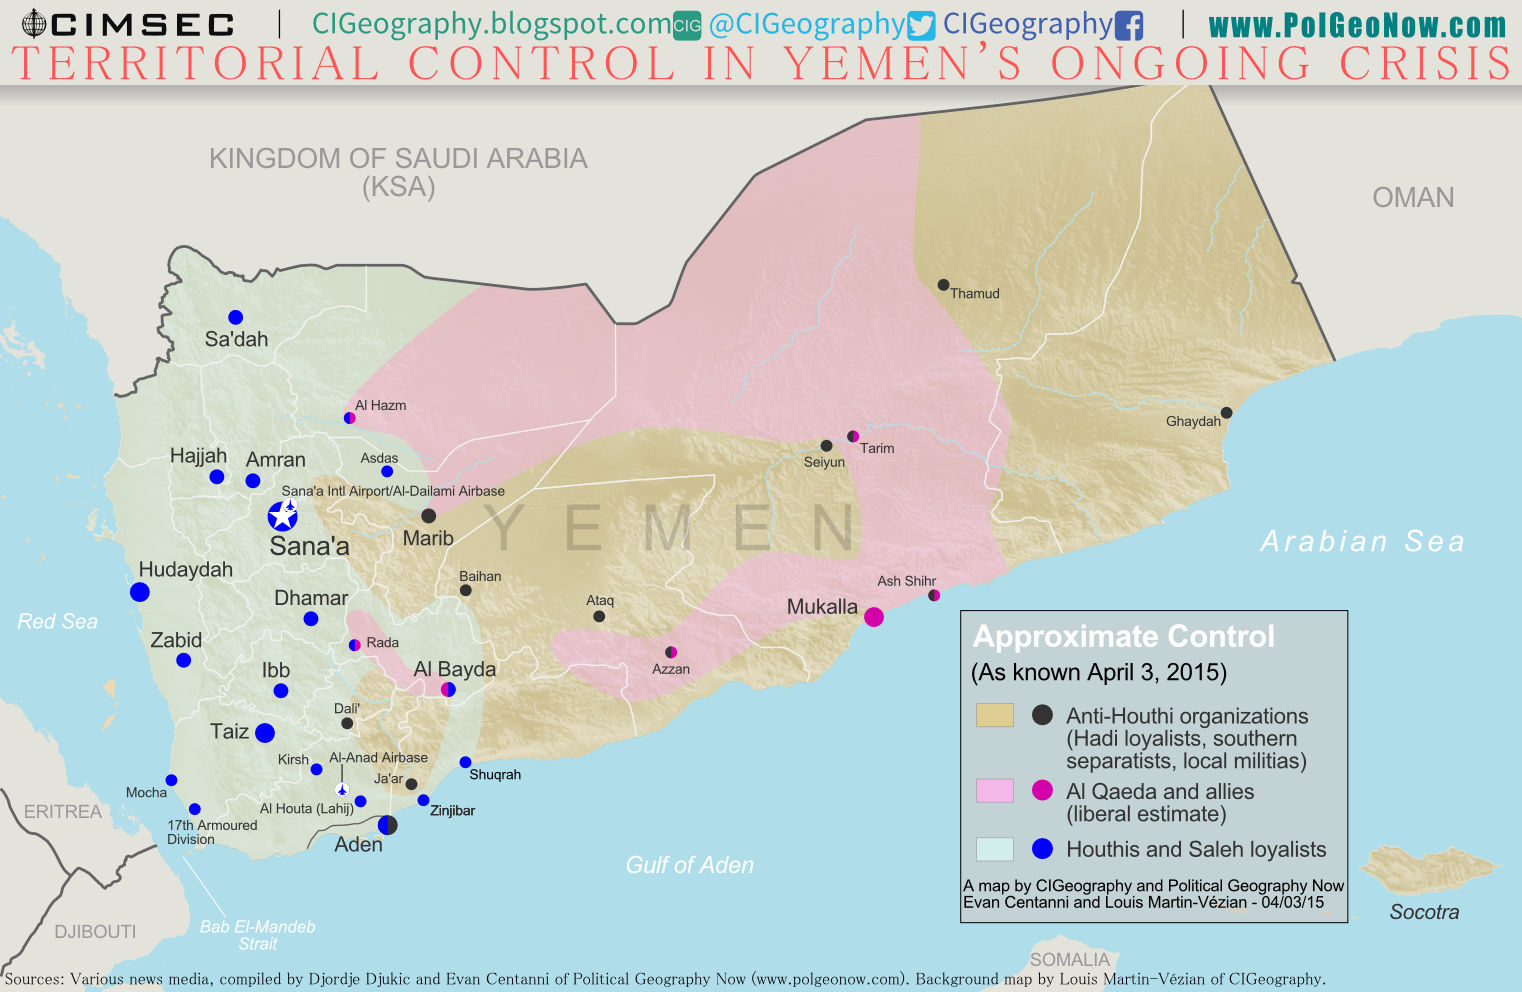 Map of territorial control in Yemen at the beginning of April 2015, at the time of Saudi Arabia's military intervention, including territory held by the Houthi rebels and former president Saleh's forces, president-in-exile Hadi and the Southern Movement, and Al Qaeda in the Arabian Peninsula (AQAP).